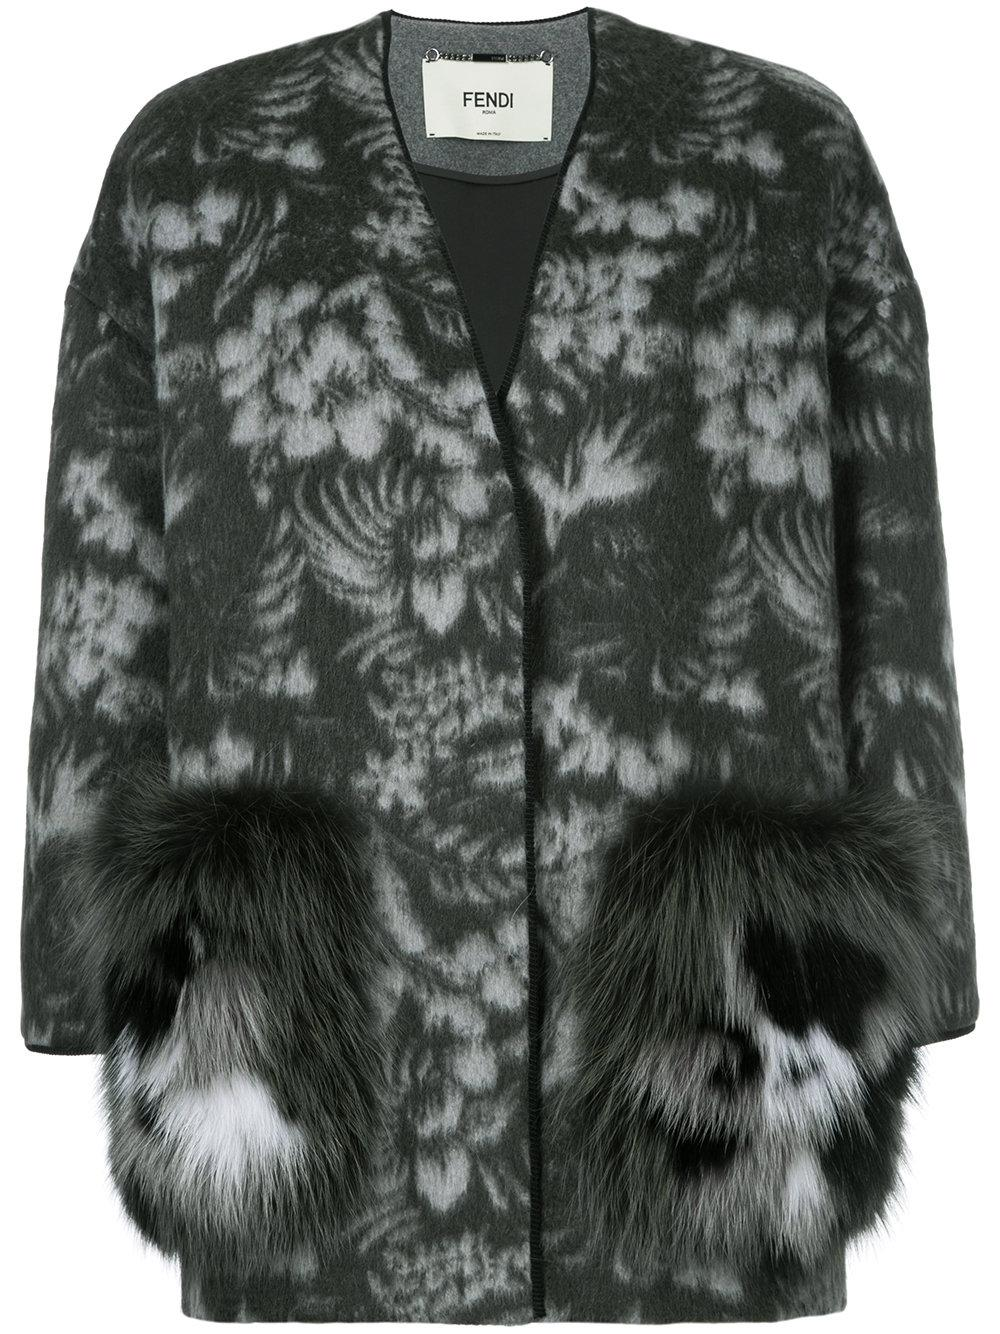 Fendi Floral Embroidered Cardi Coat In Gray Lyst